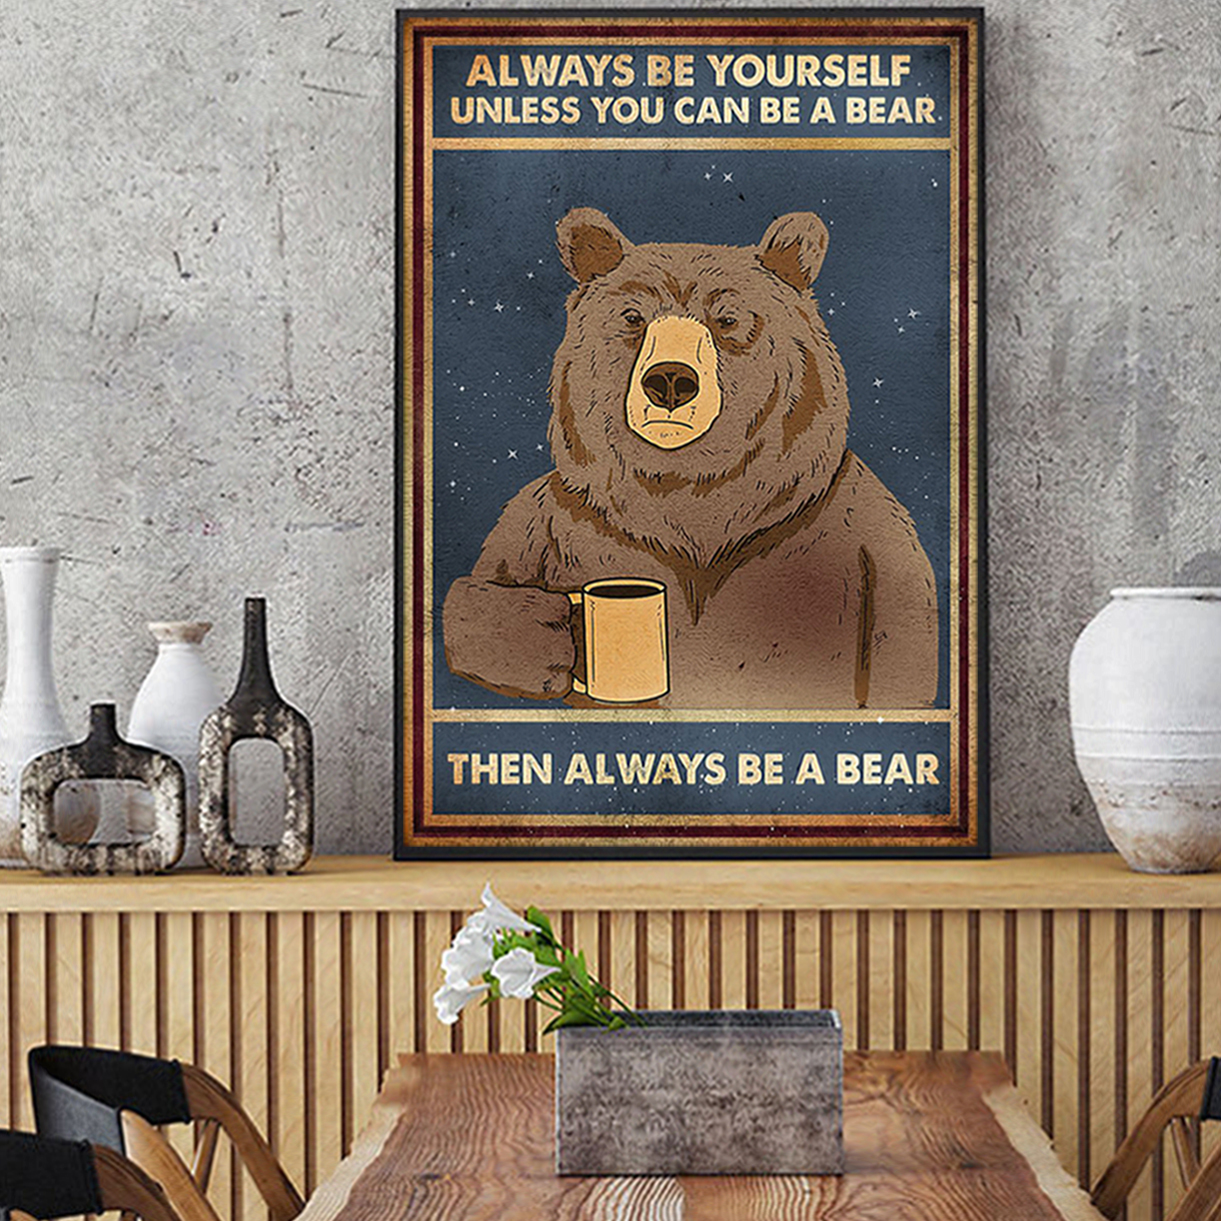 Always be yourself unless you can be a bear poster A1